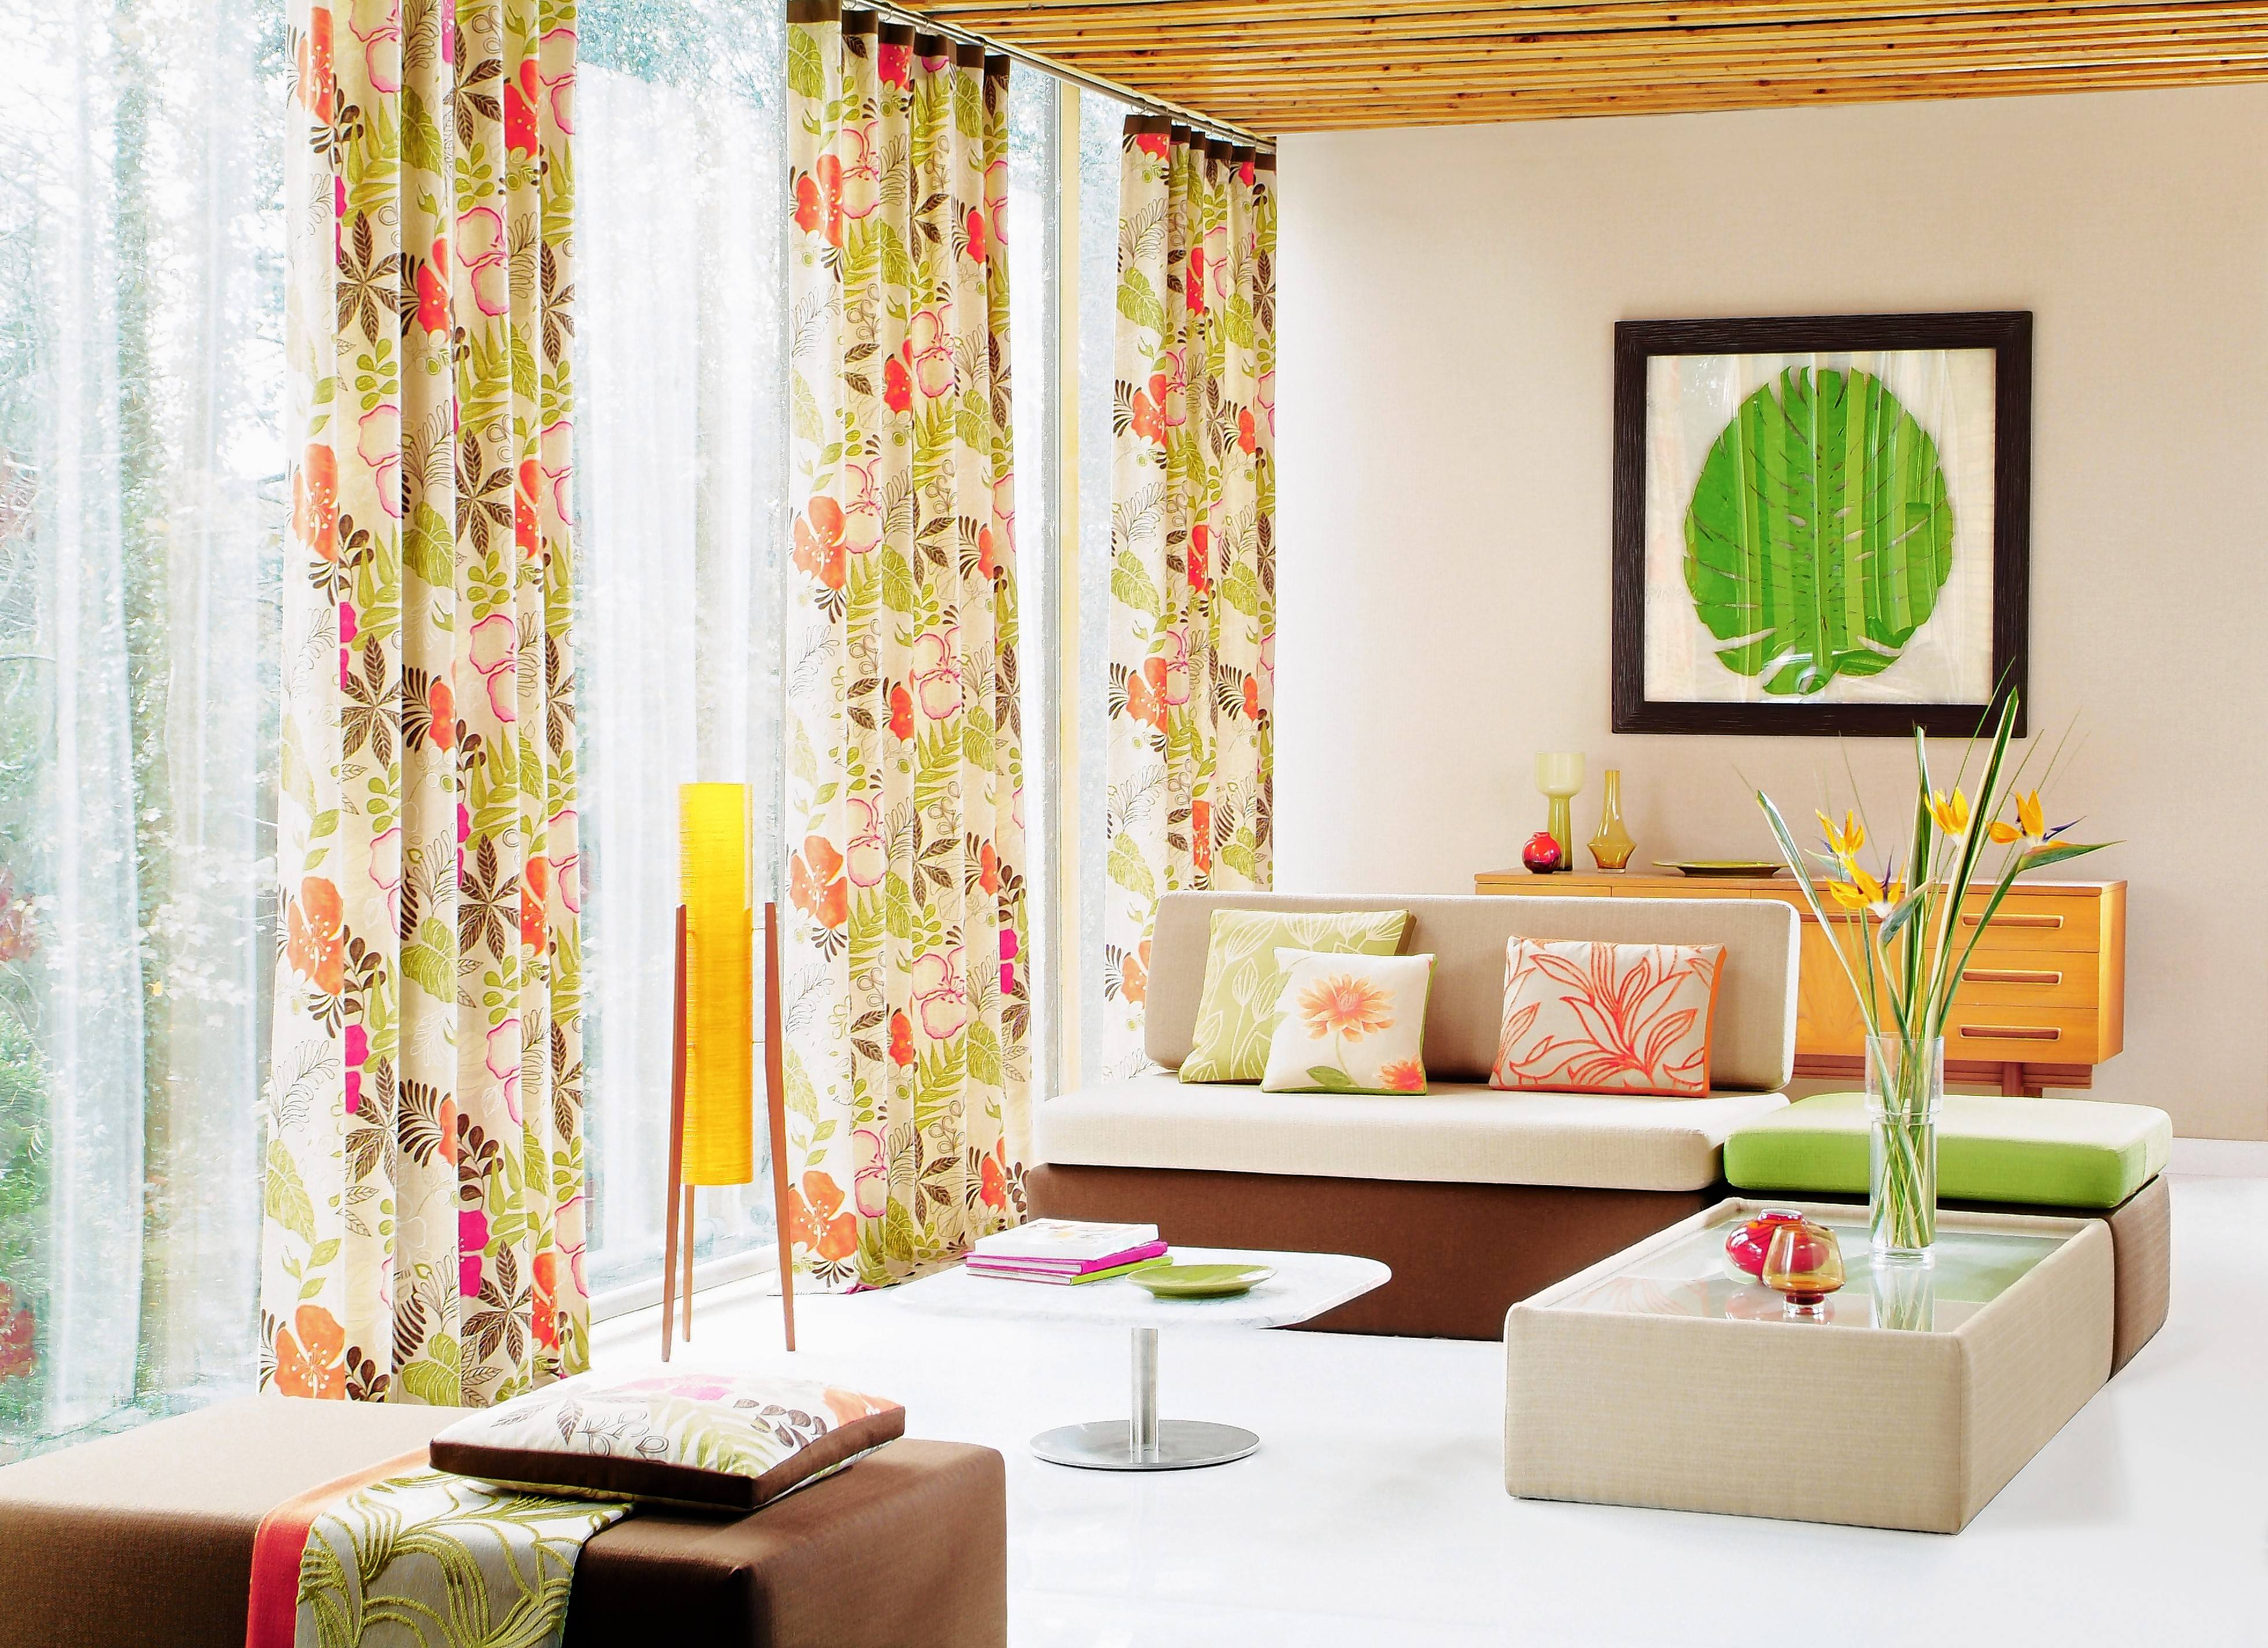 The key to a great looking window treatment? The right curtain length.